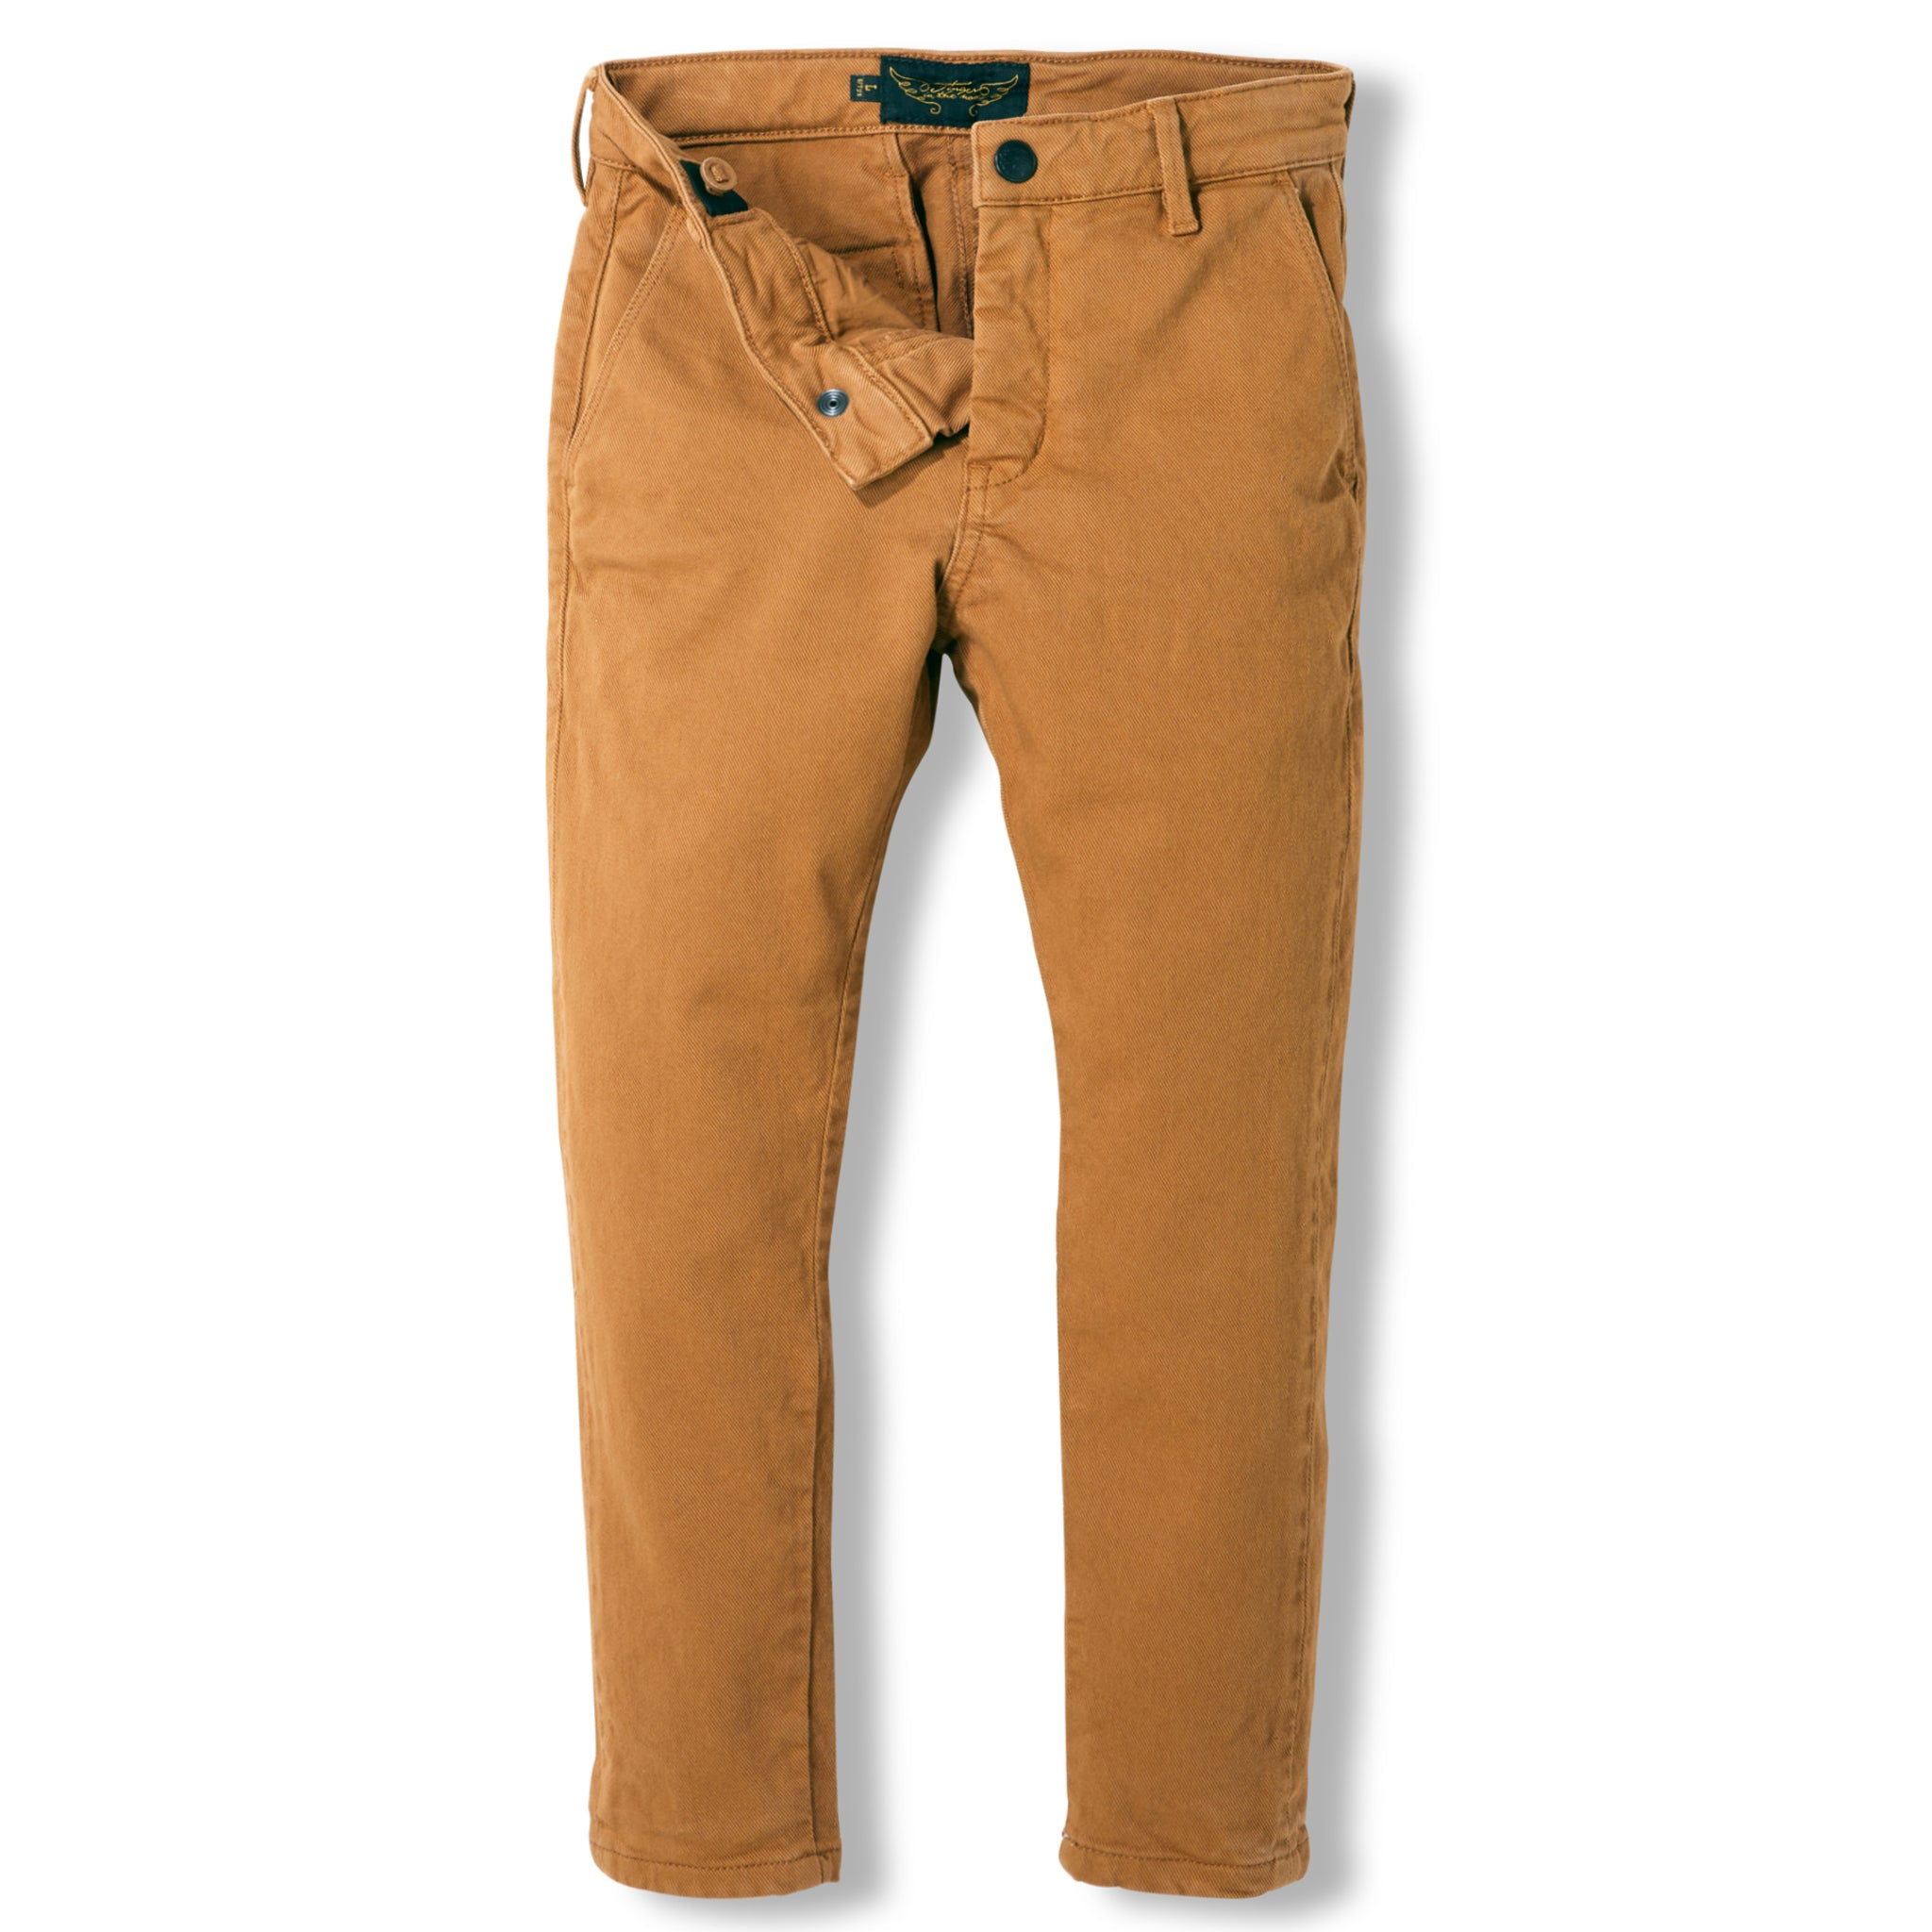 SCOTTY Caramel -  Woven Chino Fit Pants 3